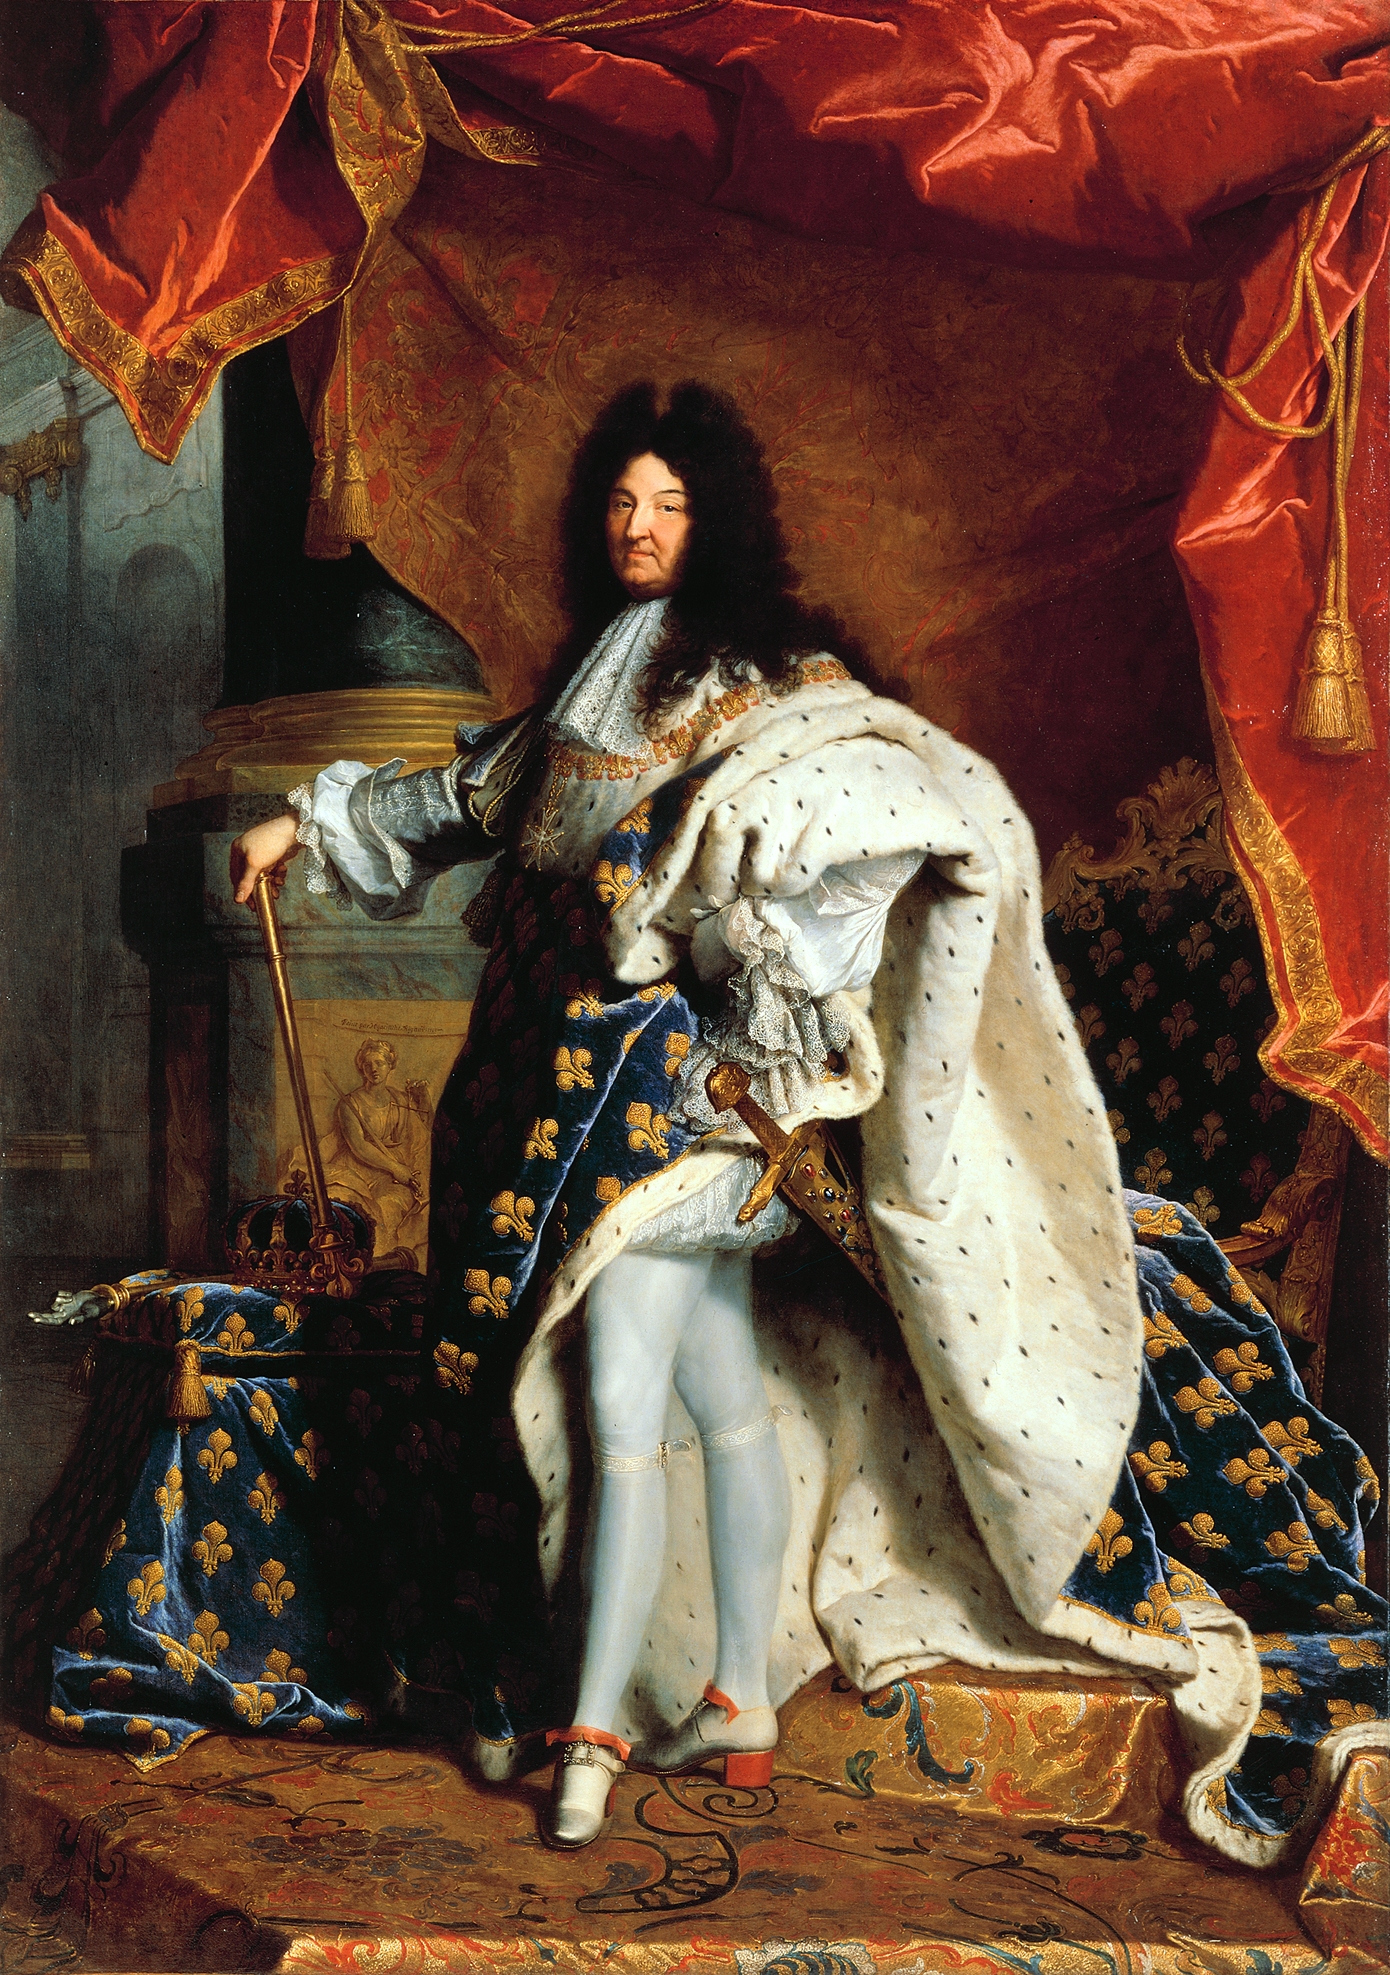 Portrait of Louis XIV by Hyacinthe Rigaud, 1701.